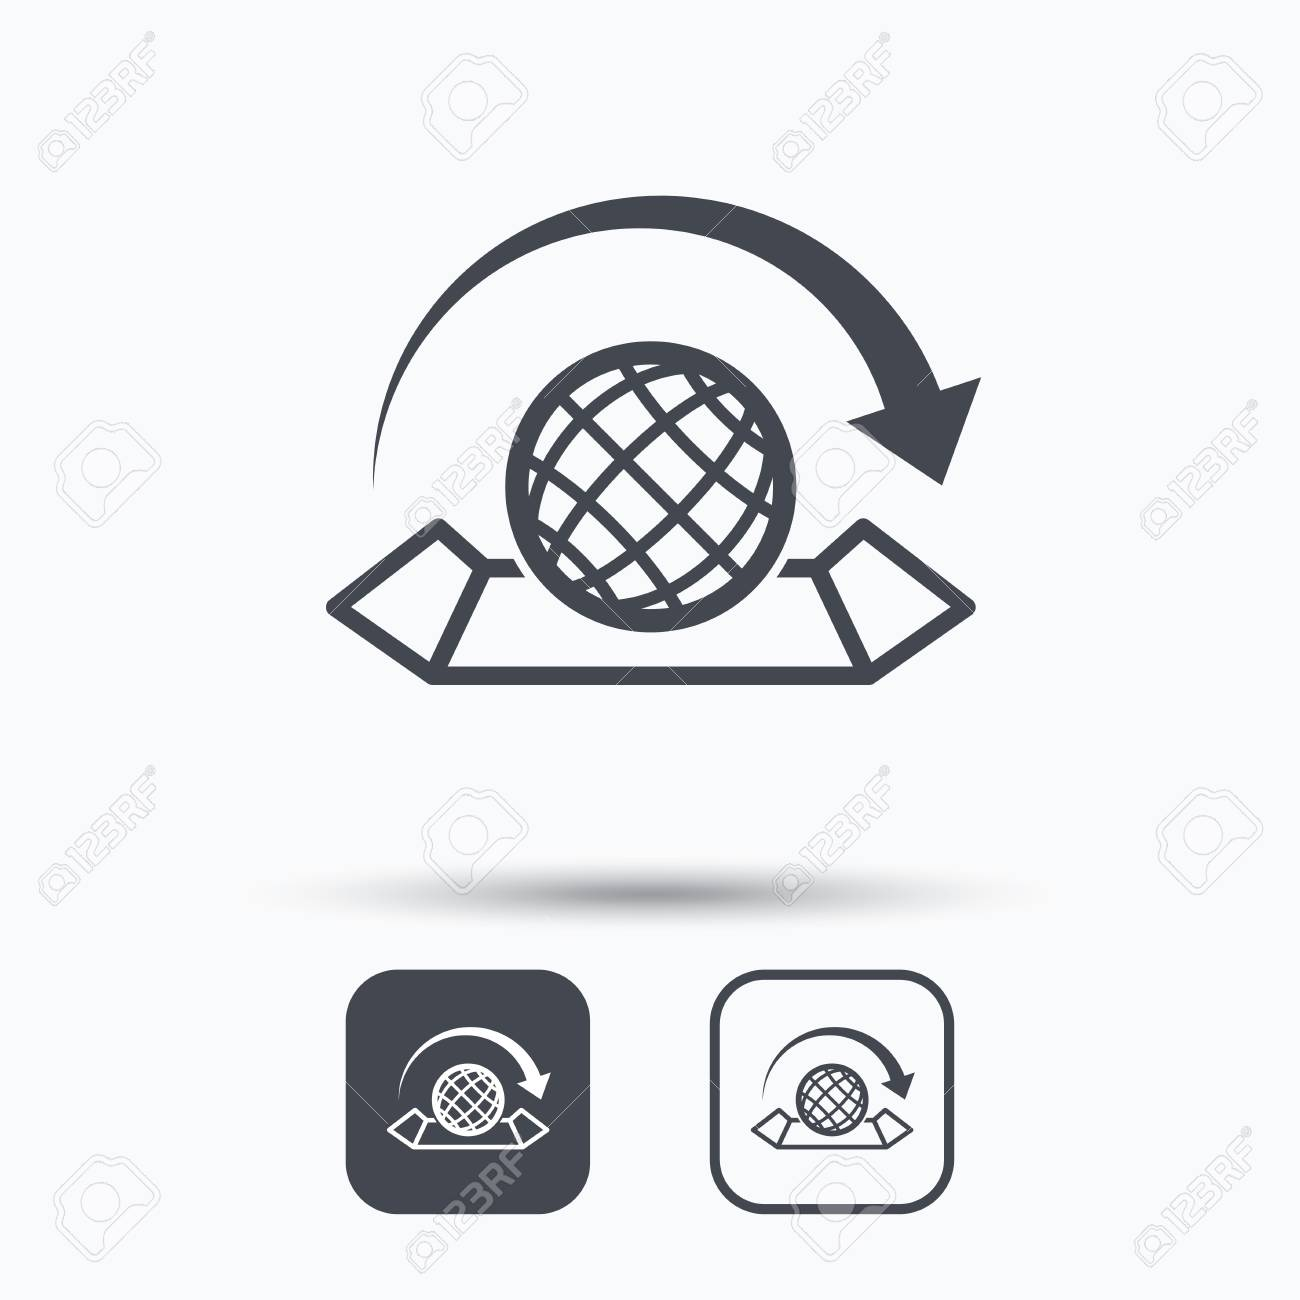 World map icon globe with arrow sign travel location symbol world map icon globe with arrow sign travel location symbol square buttons with gumiabroncs Gallery